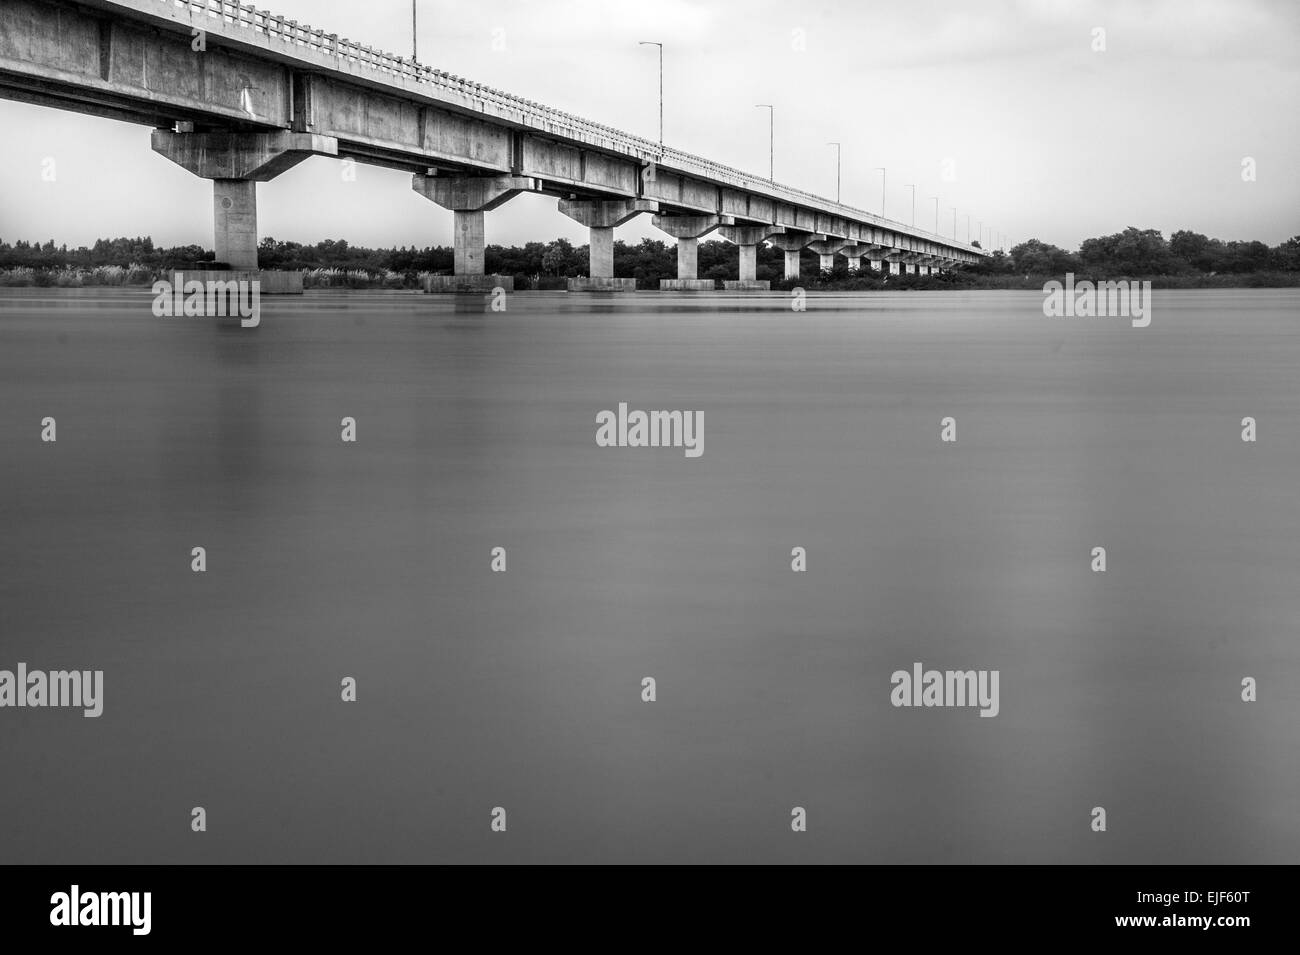 Bridge over Krishna river, Repalle, Andhra Pradesh, India - Stock Image